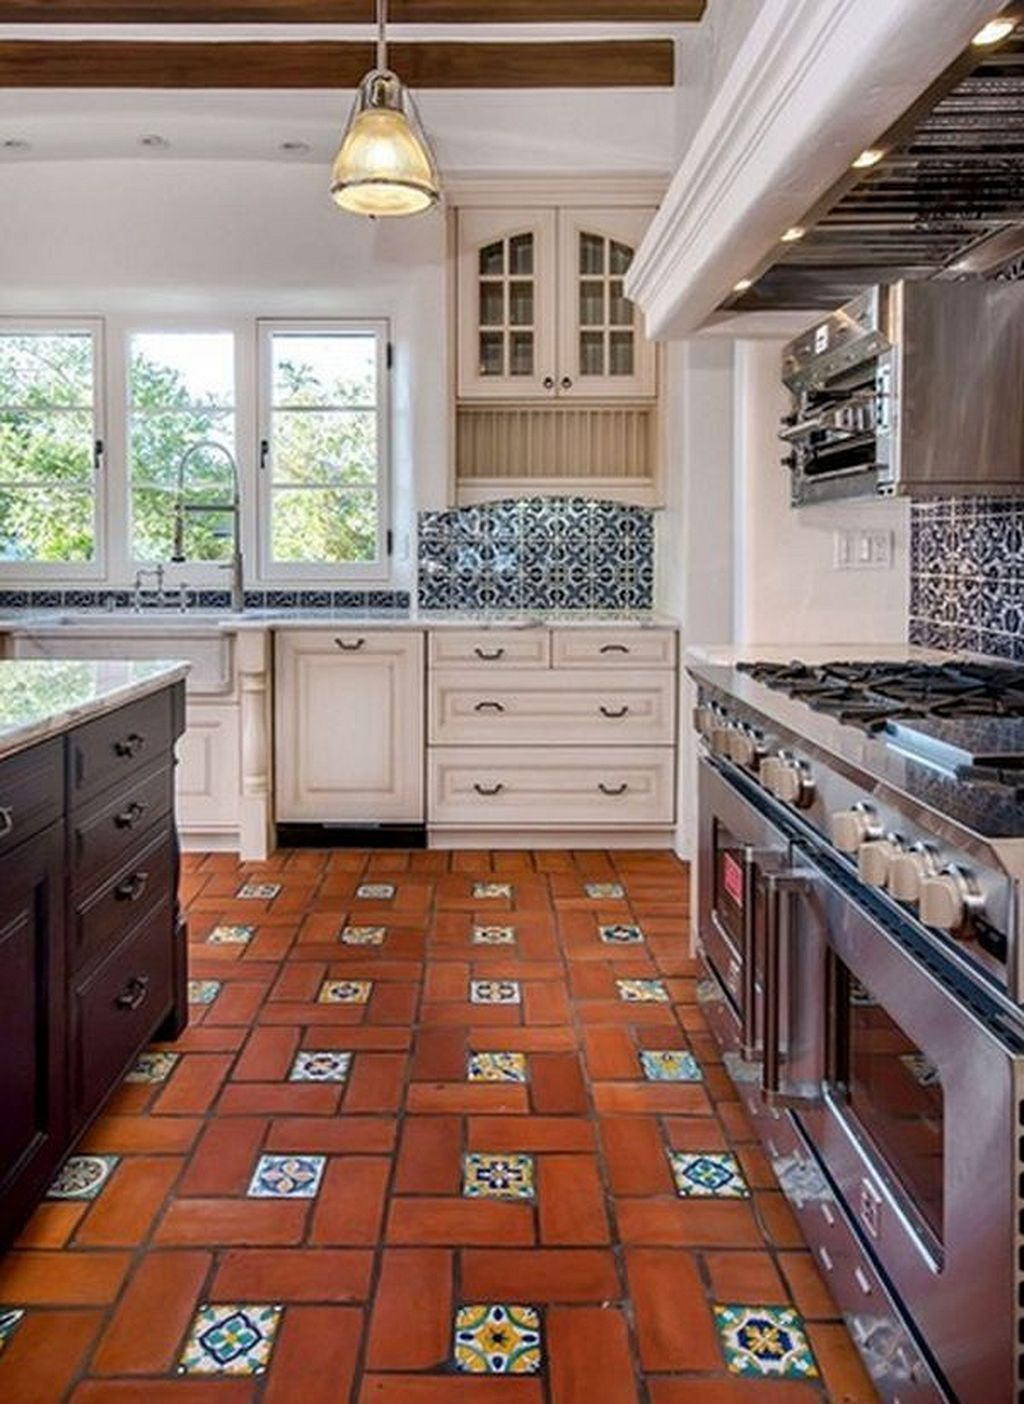 Terracotta Floor Tile Decorating Ideas Mediterranean Decor For Modern Kitchen Ideas 9  Mediterranean